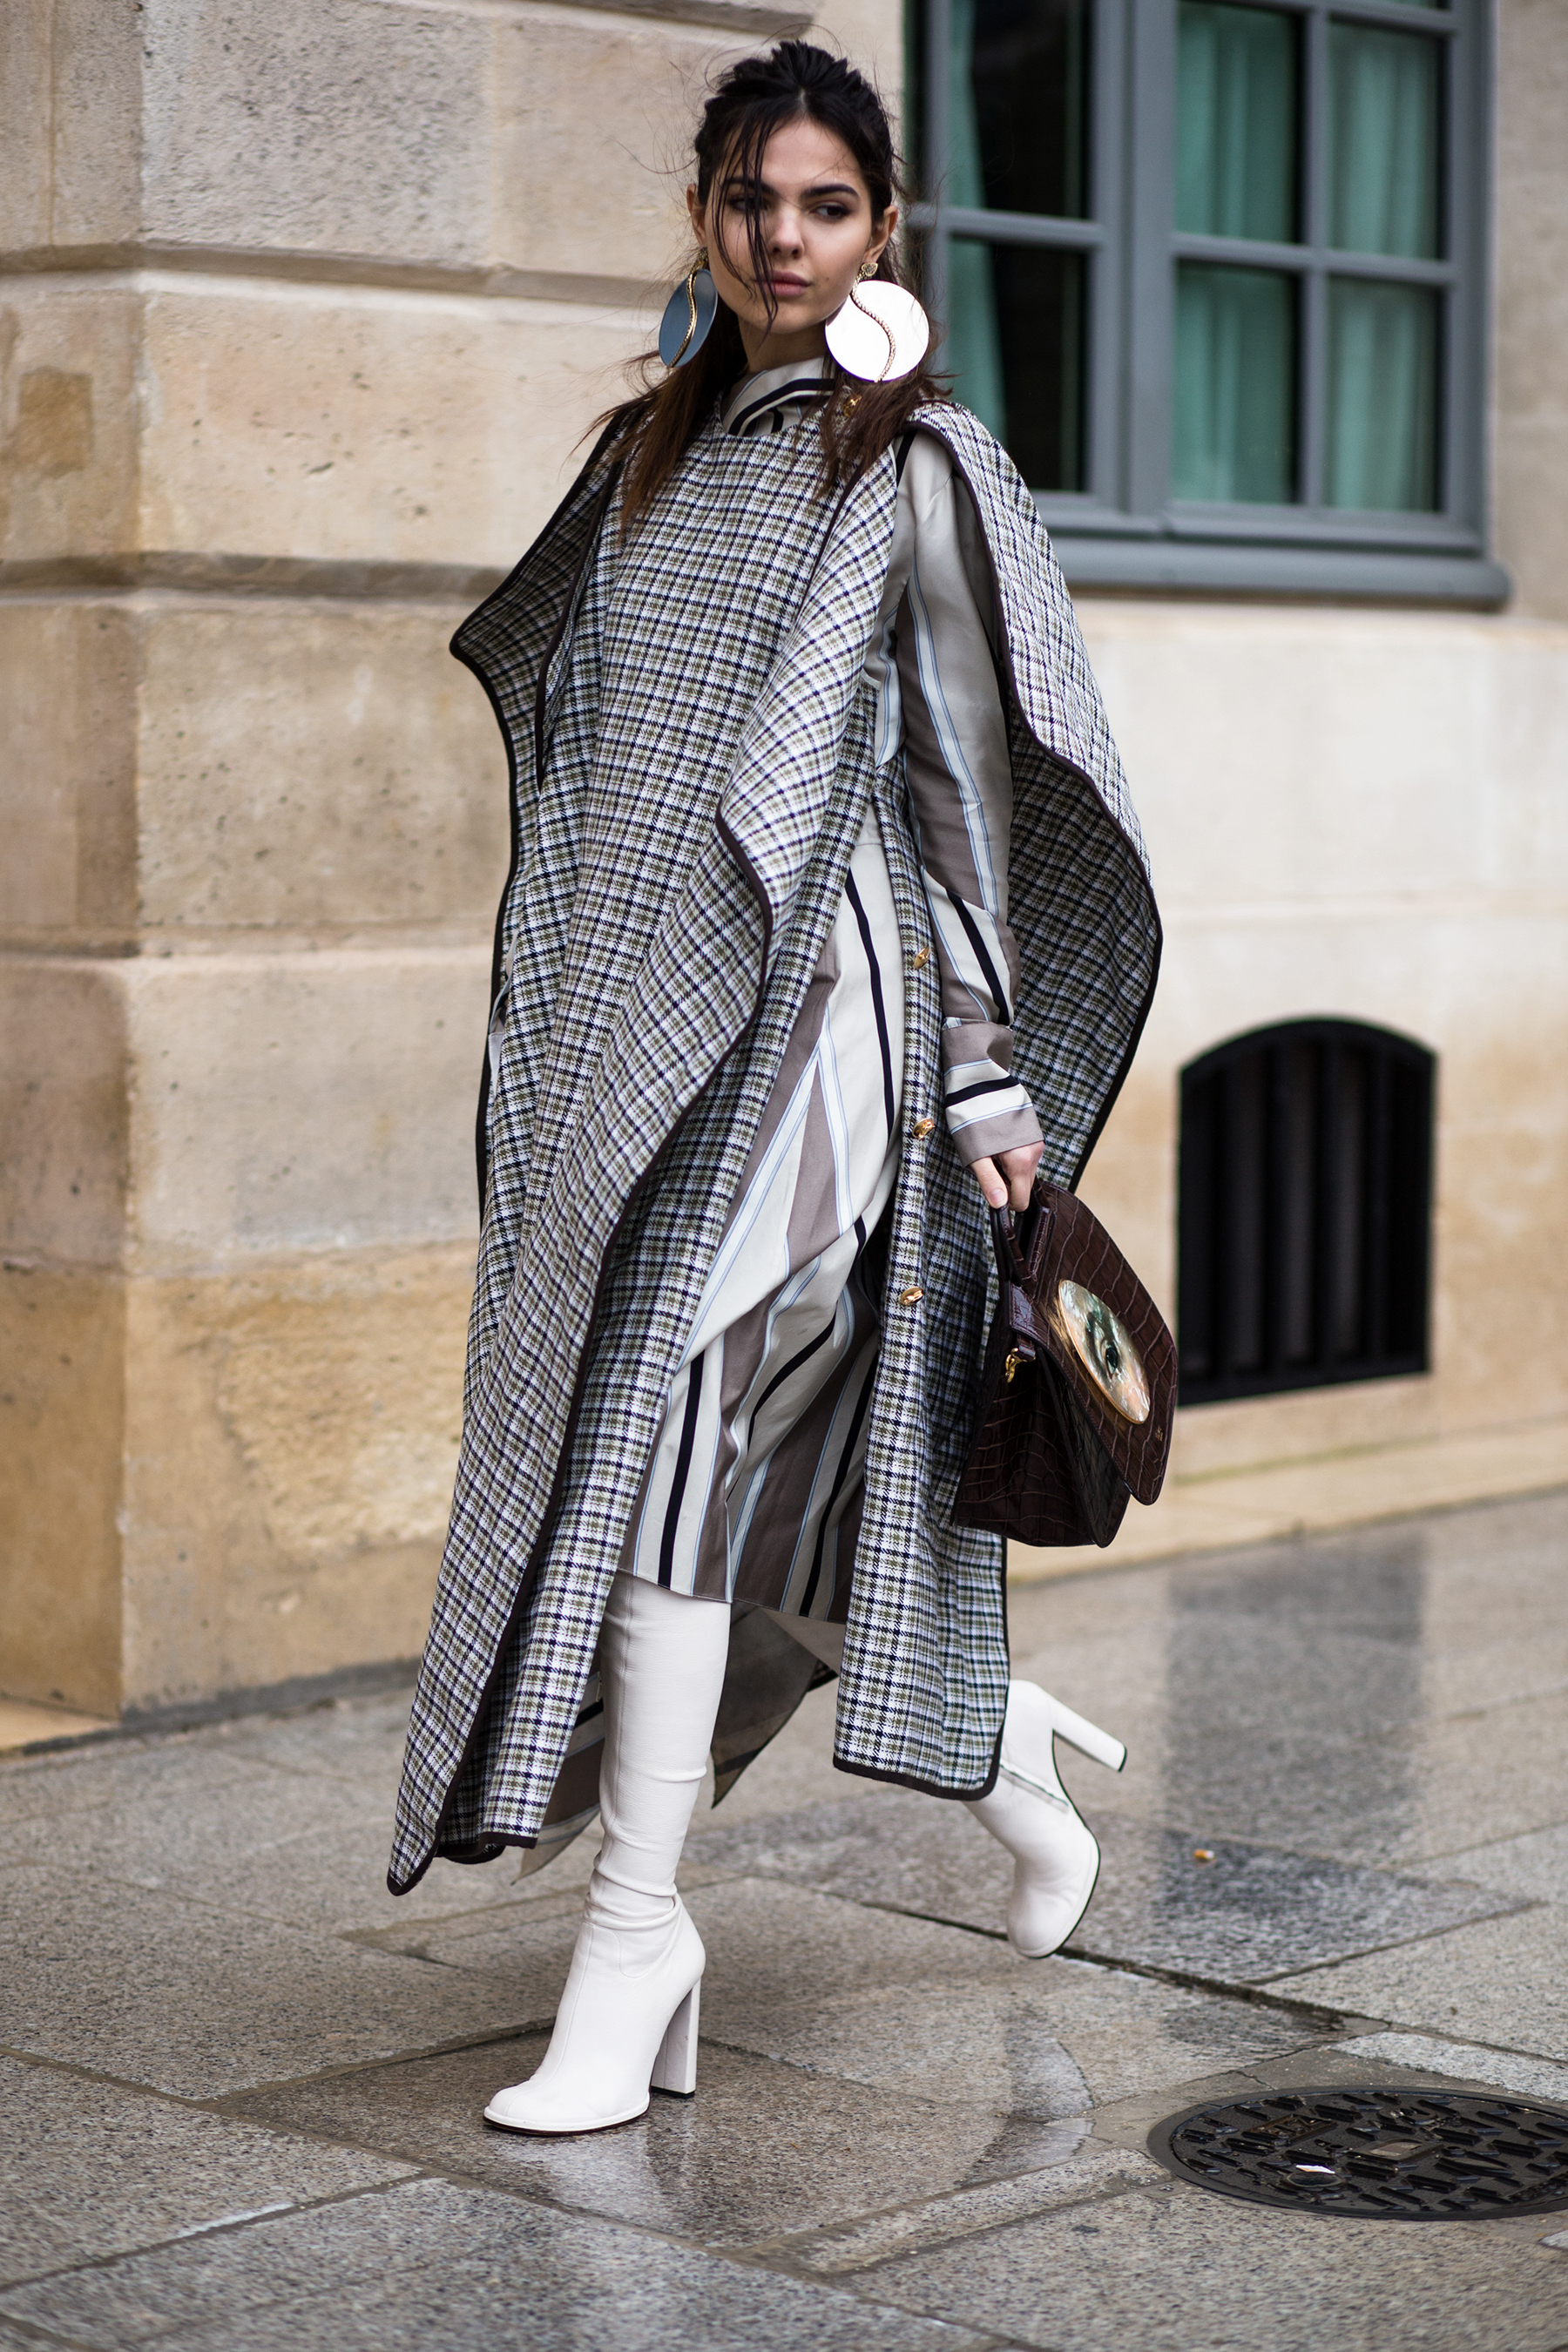 Paris-Couture-street-style-robert-purwin-the-impression-91